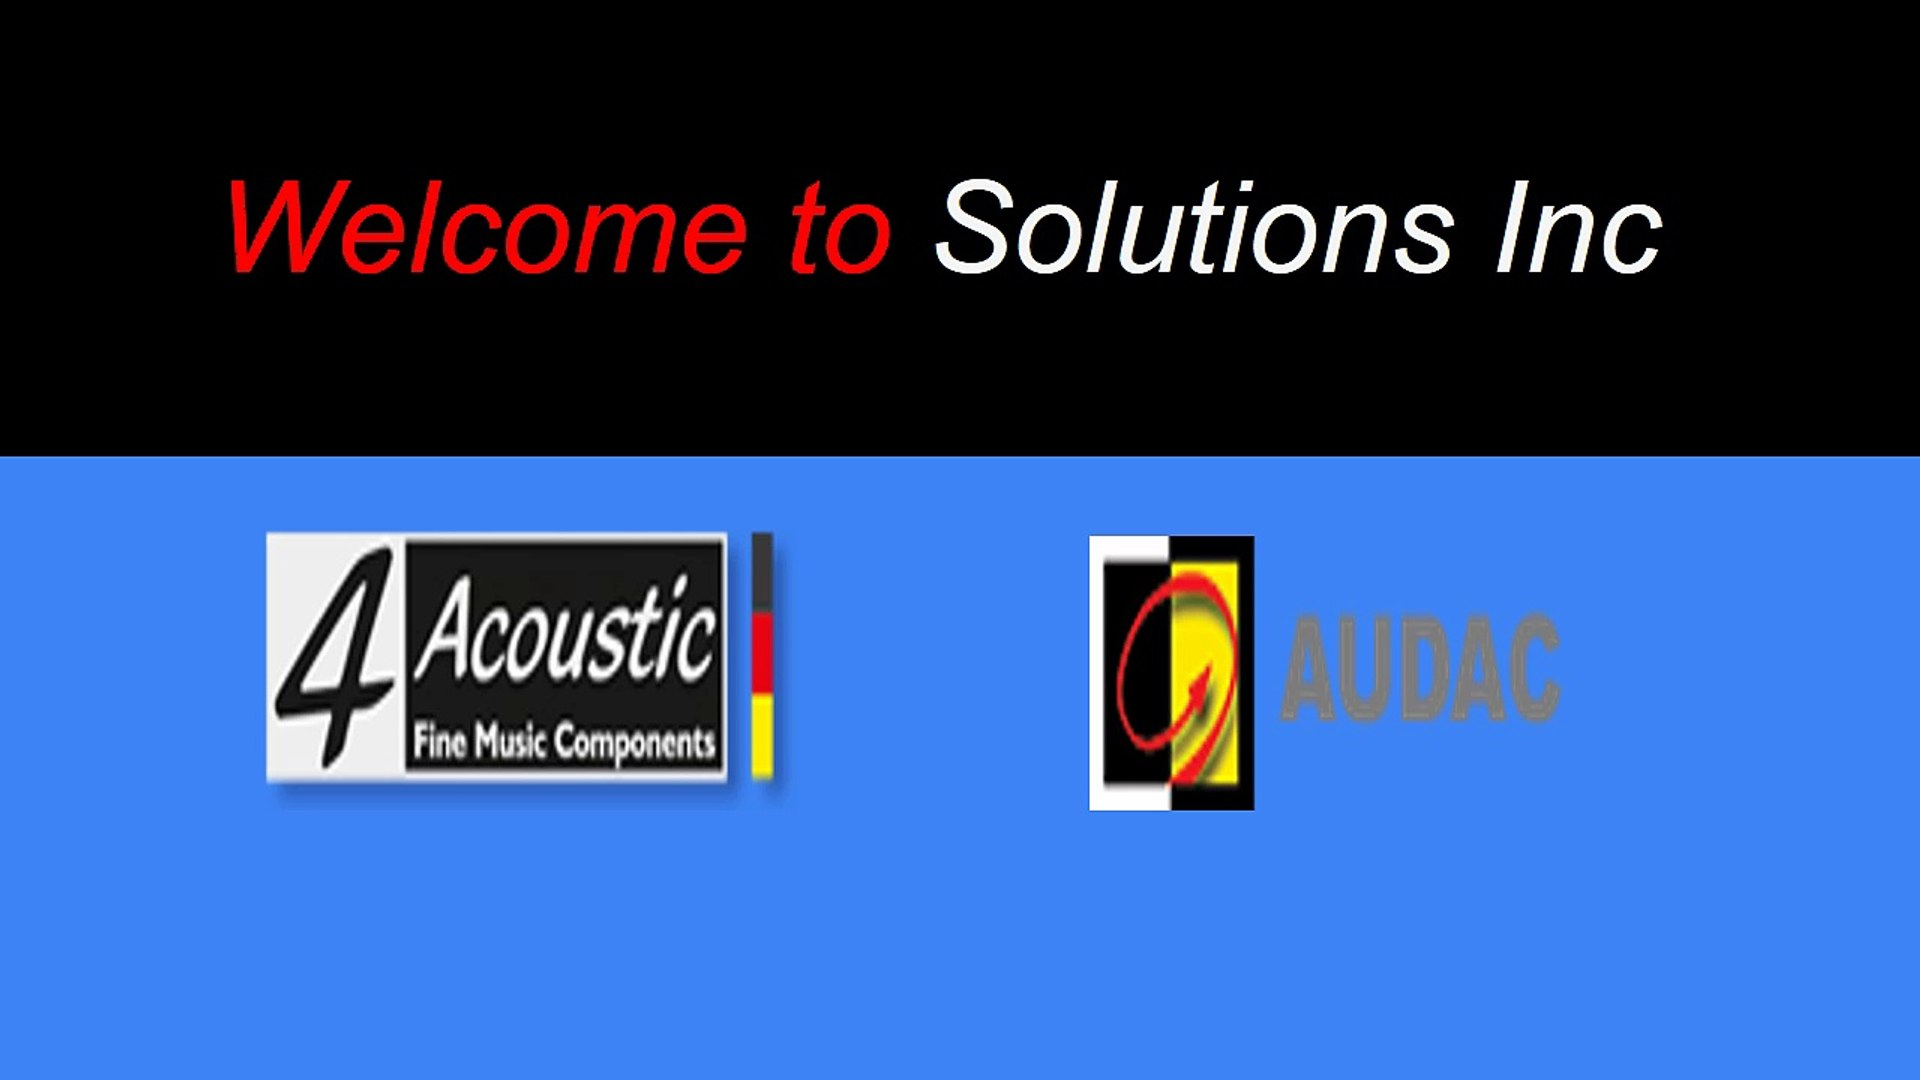 Solution Inc Products